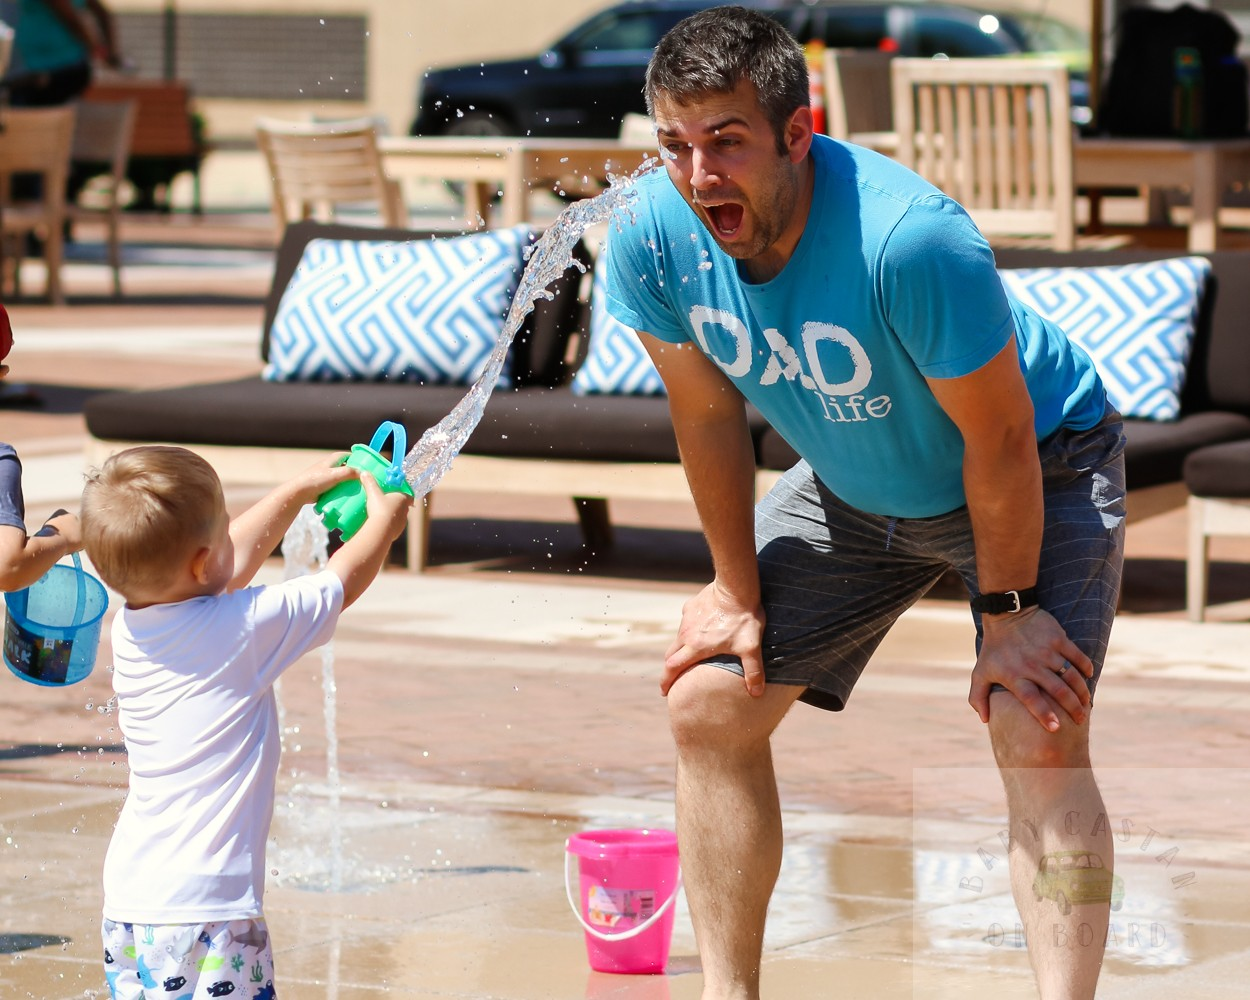 best splash pads in DC_One Loudoun Splash pad_toddler and dad_web